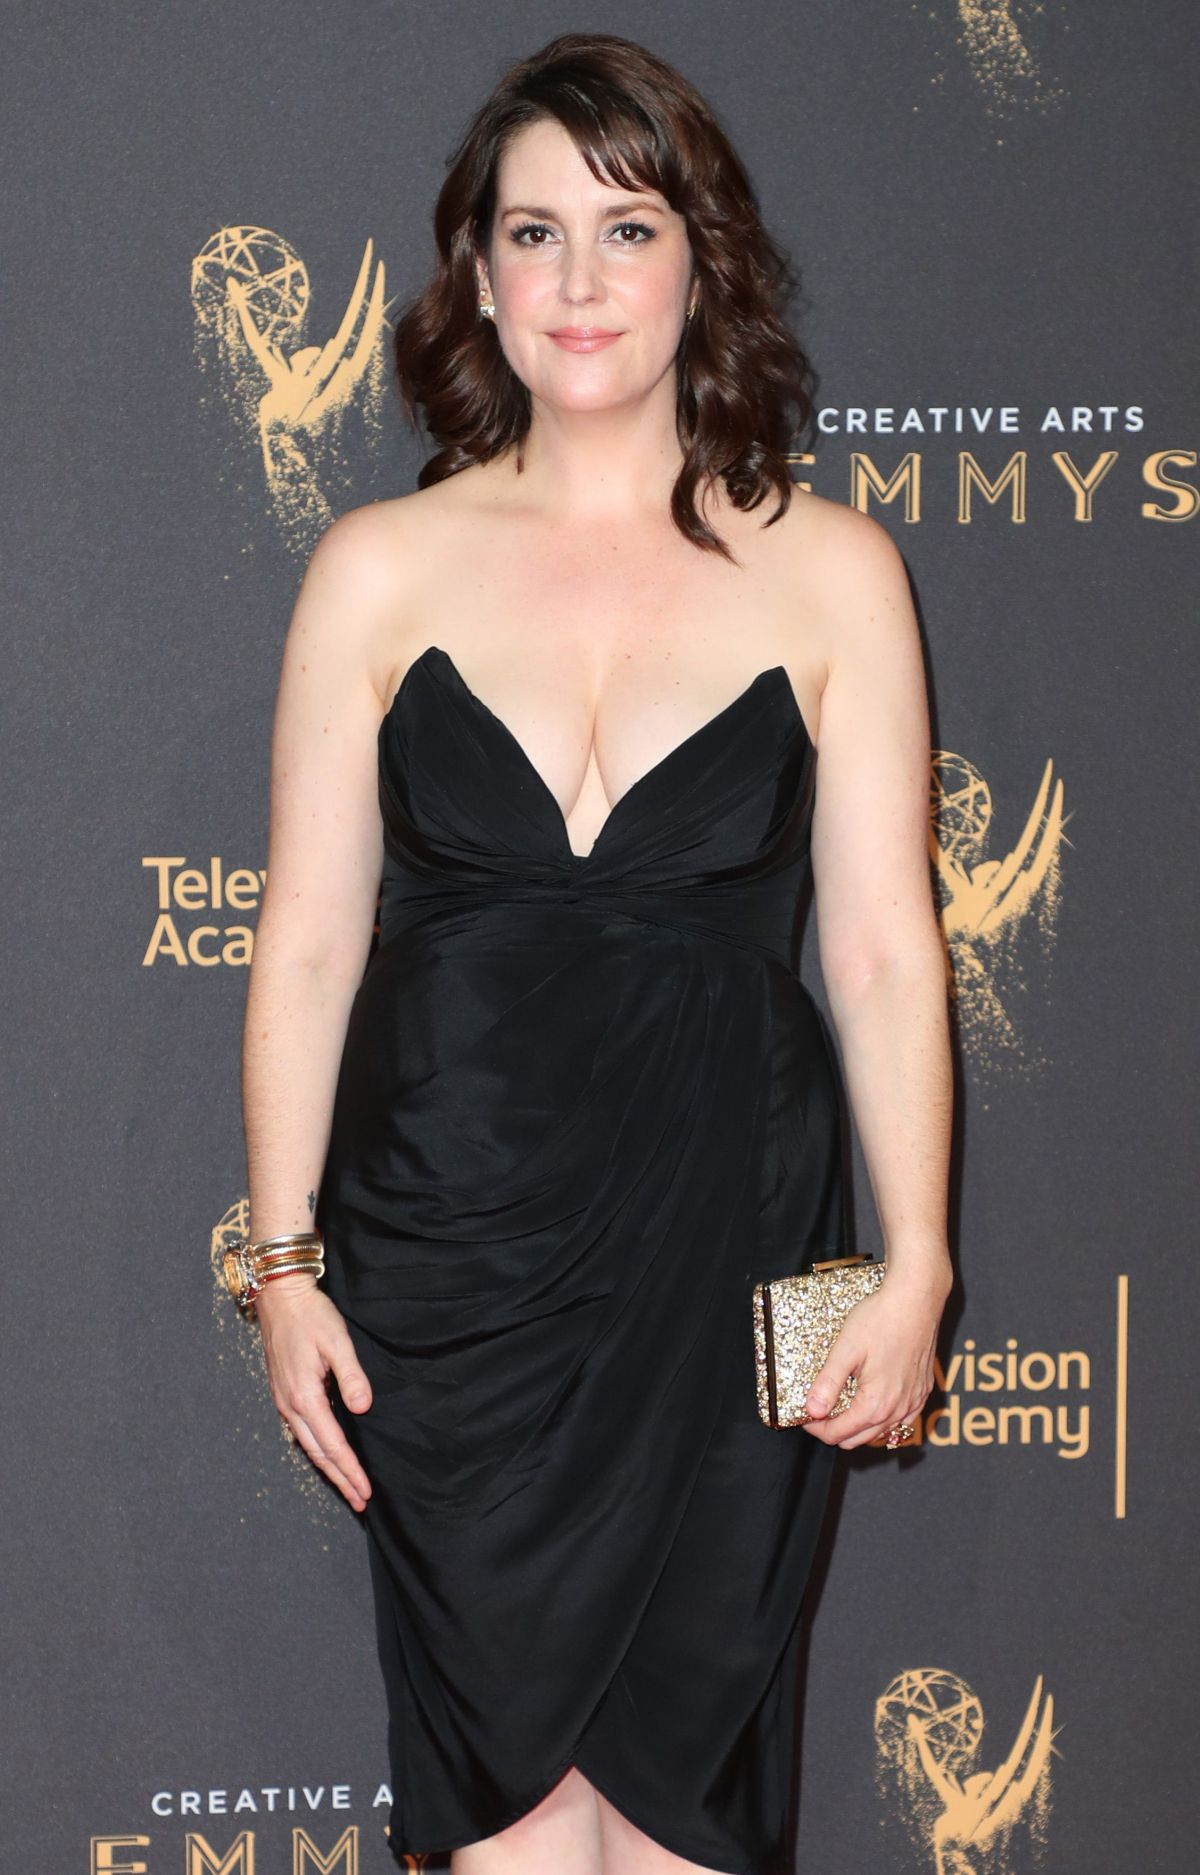 MELANIE LYNSKEY at Creative Arts Emmy Awards in Los Angeles 09/10/2017